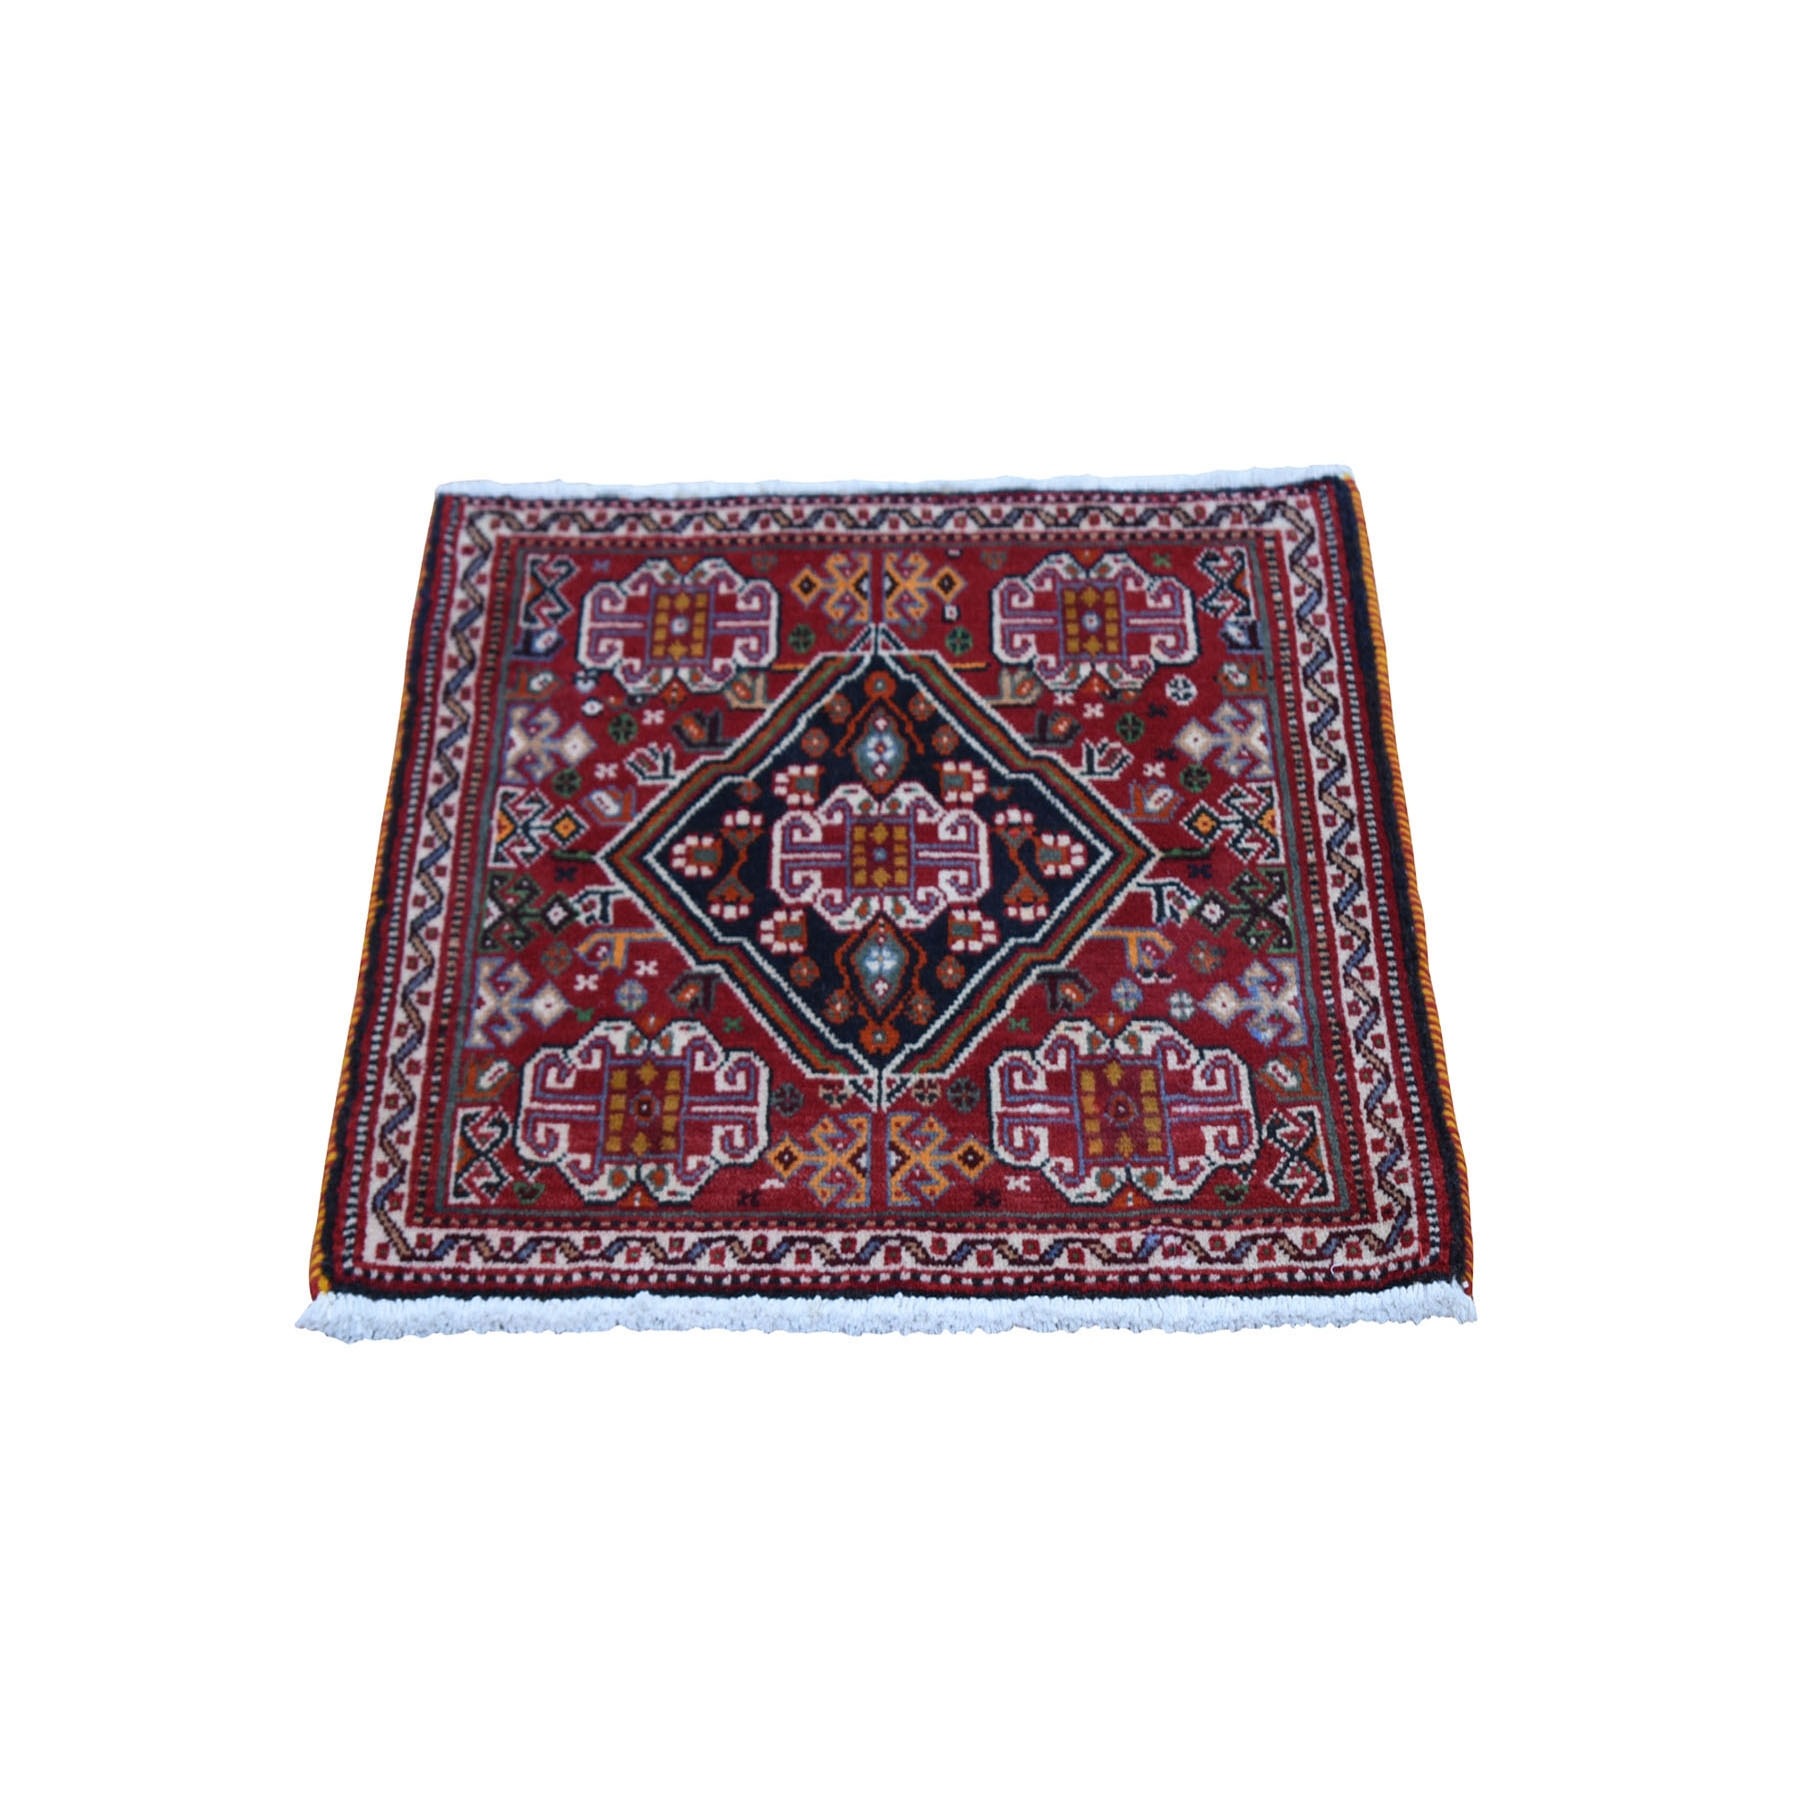 2'x2' Red Vintage Persian Qashqai Nomad Vivid Exc Condition Pure Wool Hand Woven Little Bohemian Mat